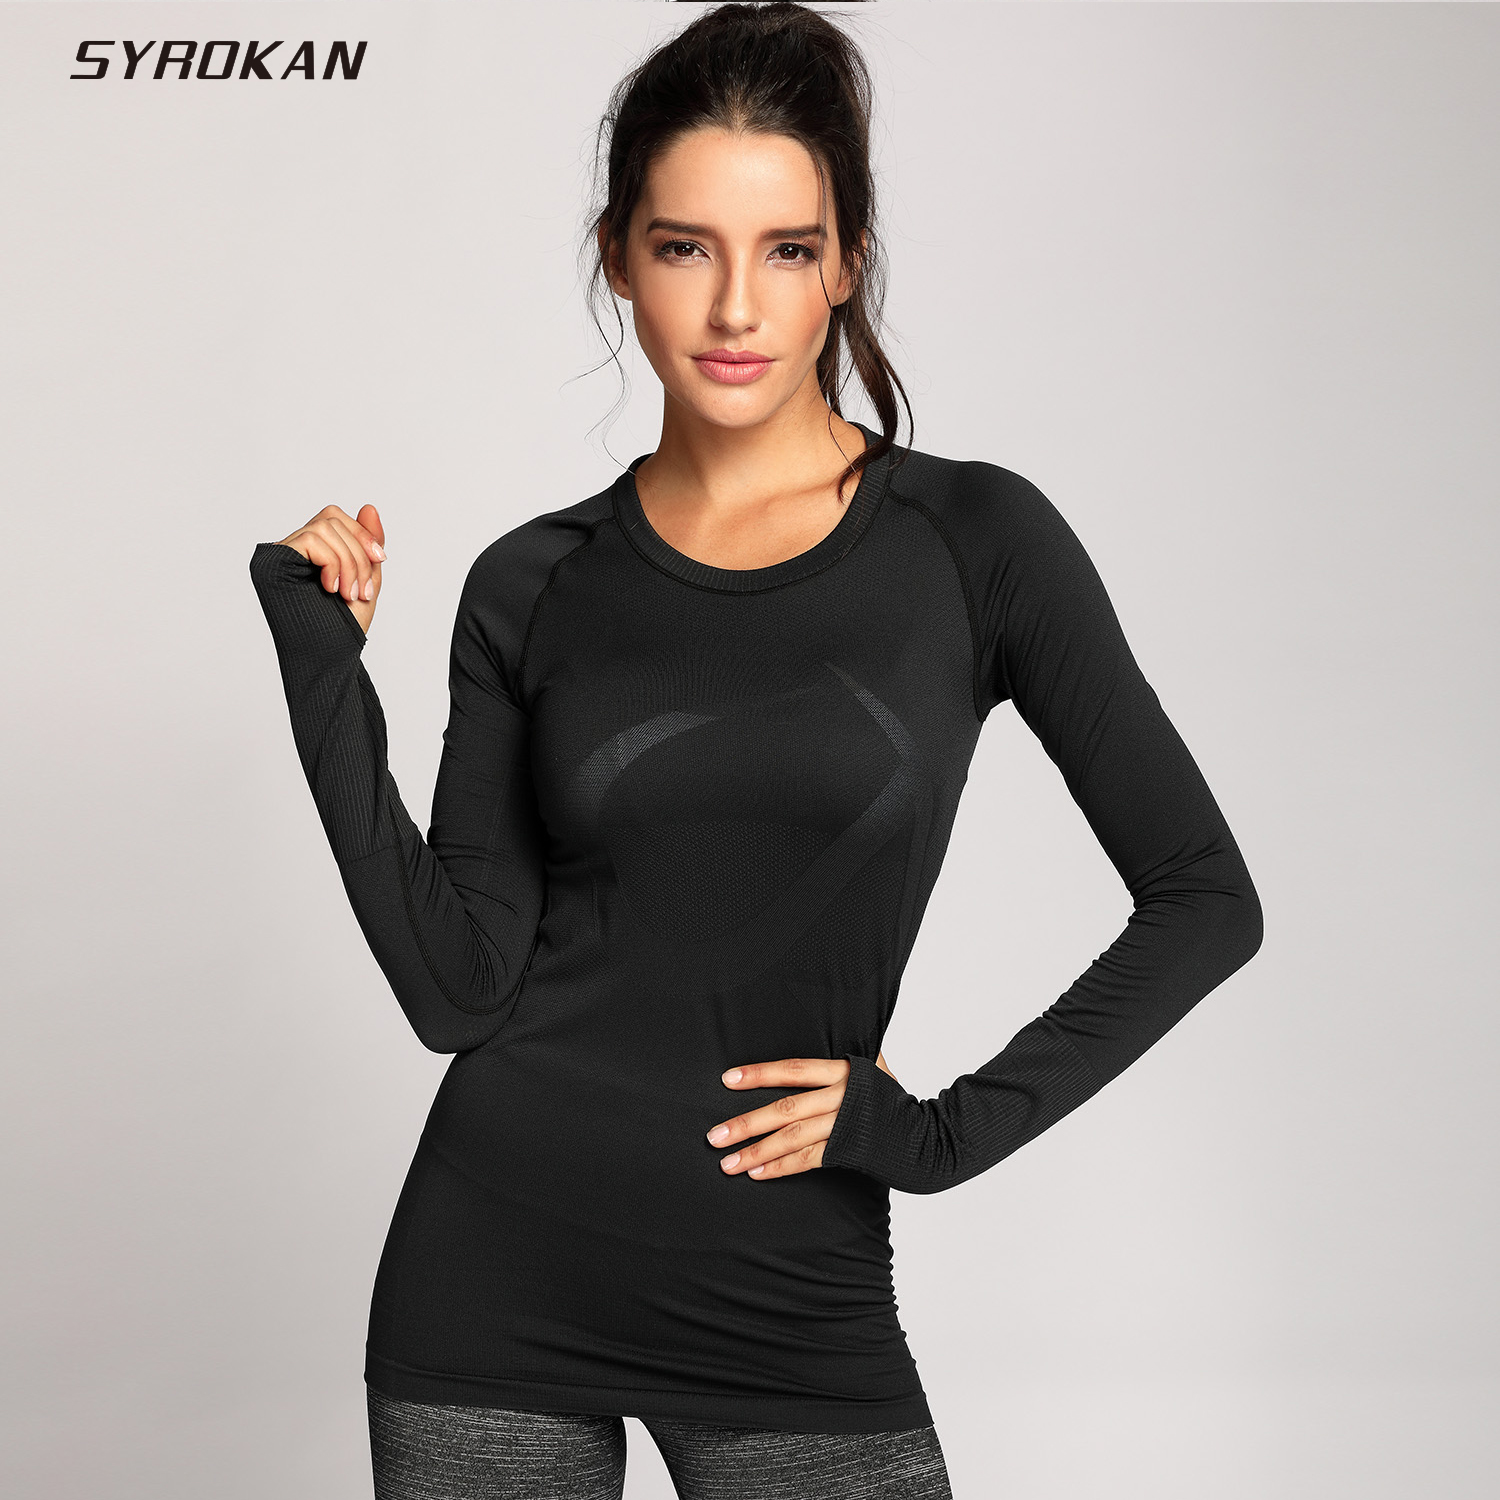 SYROKAN Women's Active Long Sleeve Sports Running Tee Top Seamless Leisure T-shirt все цены